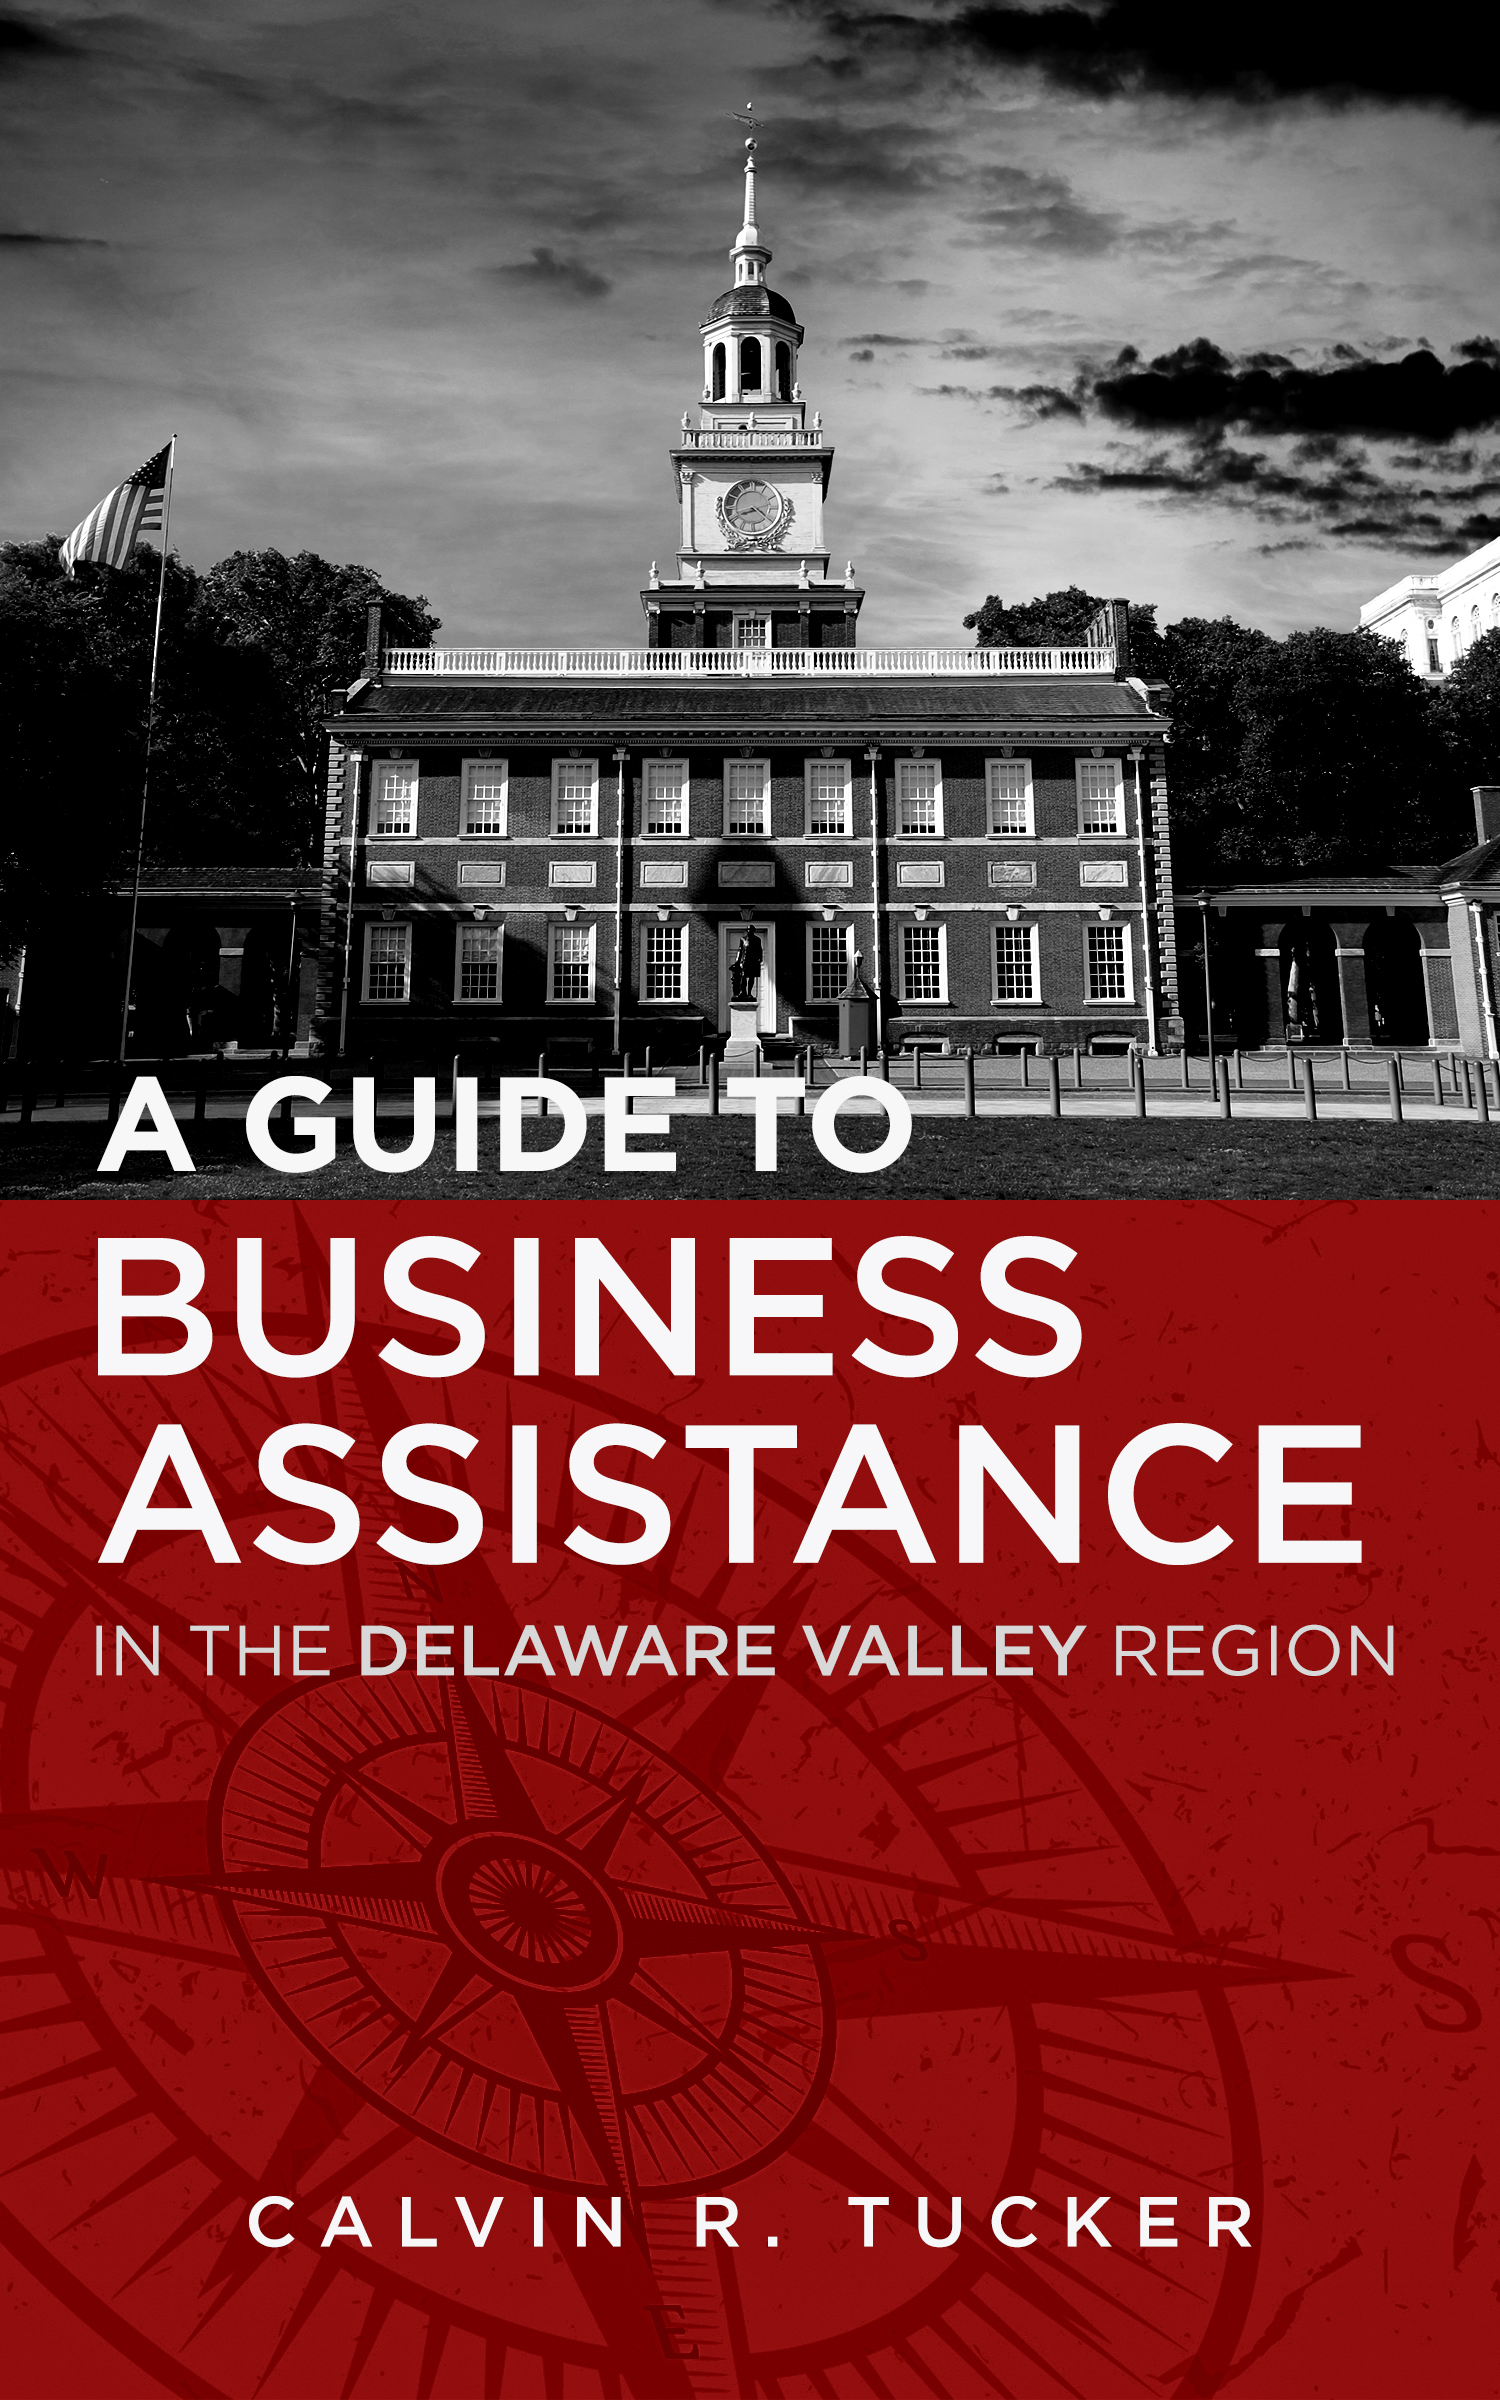 A Guide To Business Assistance in the Delaware Valley